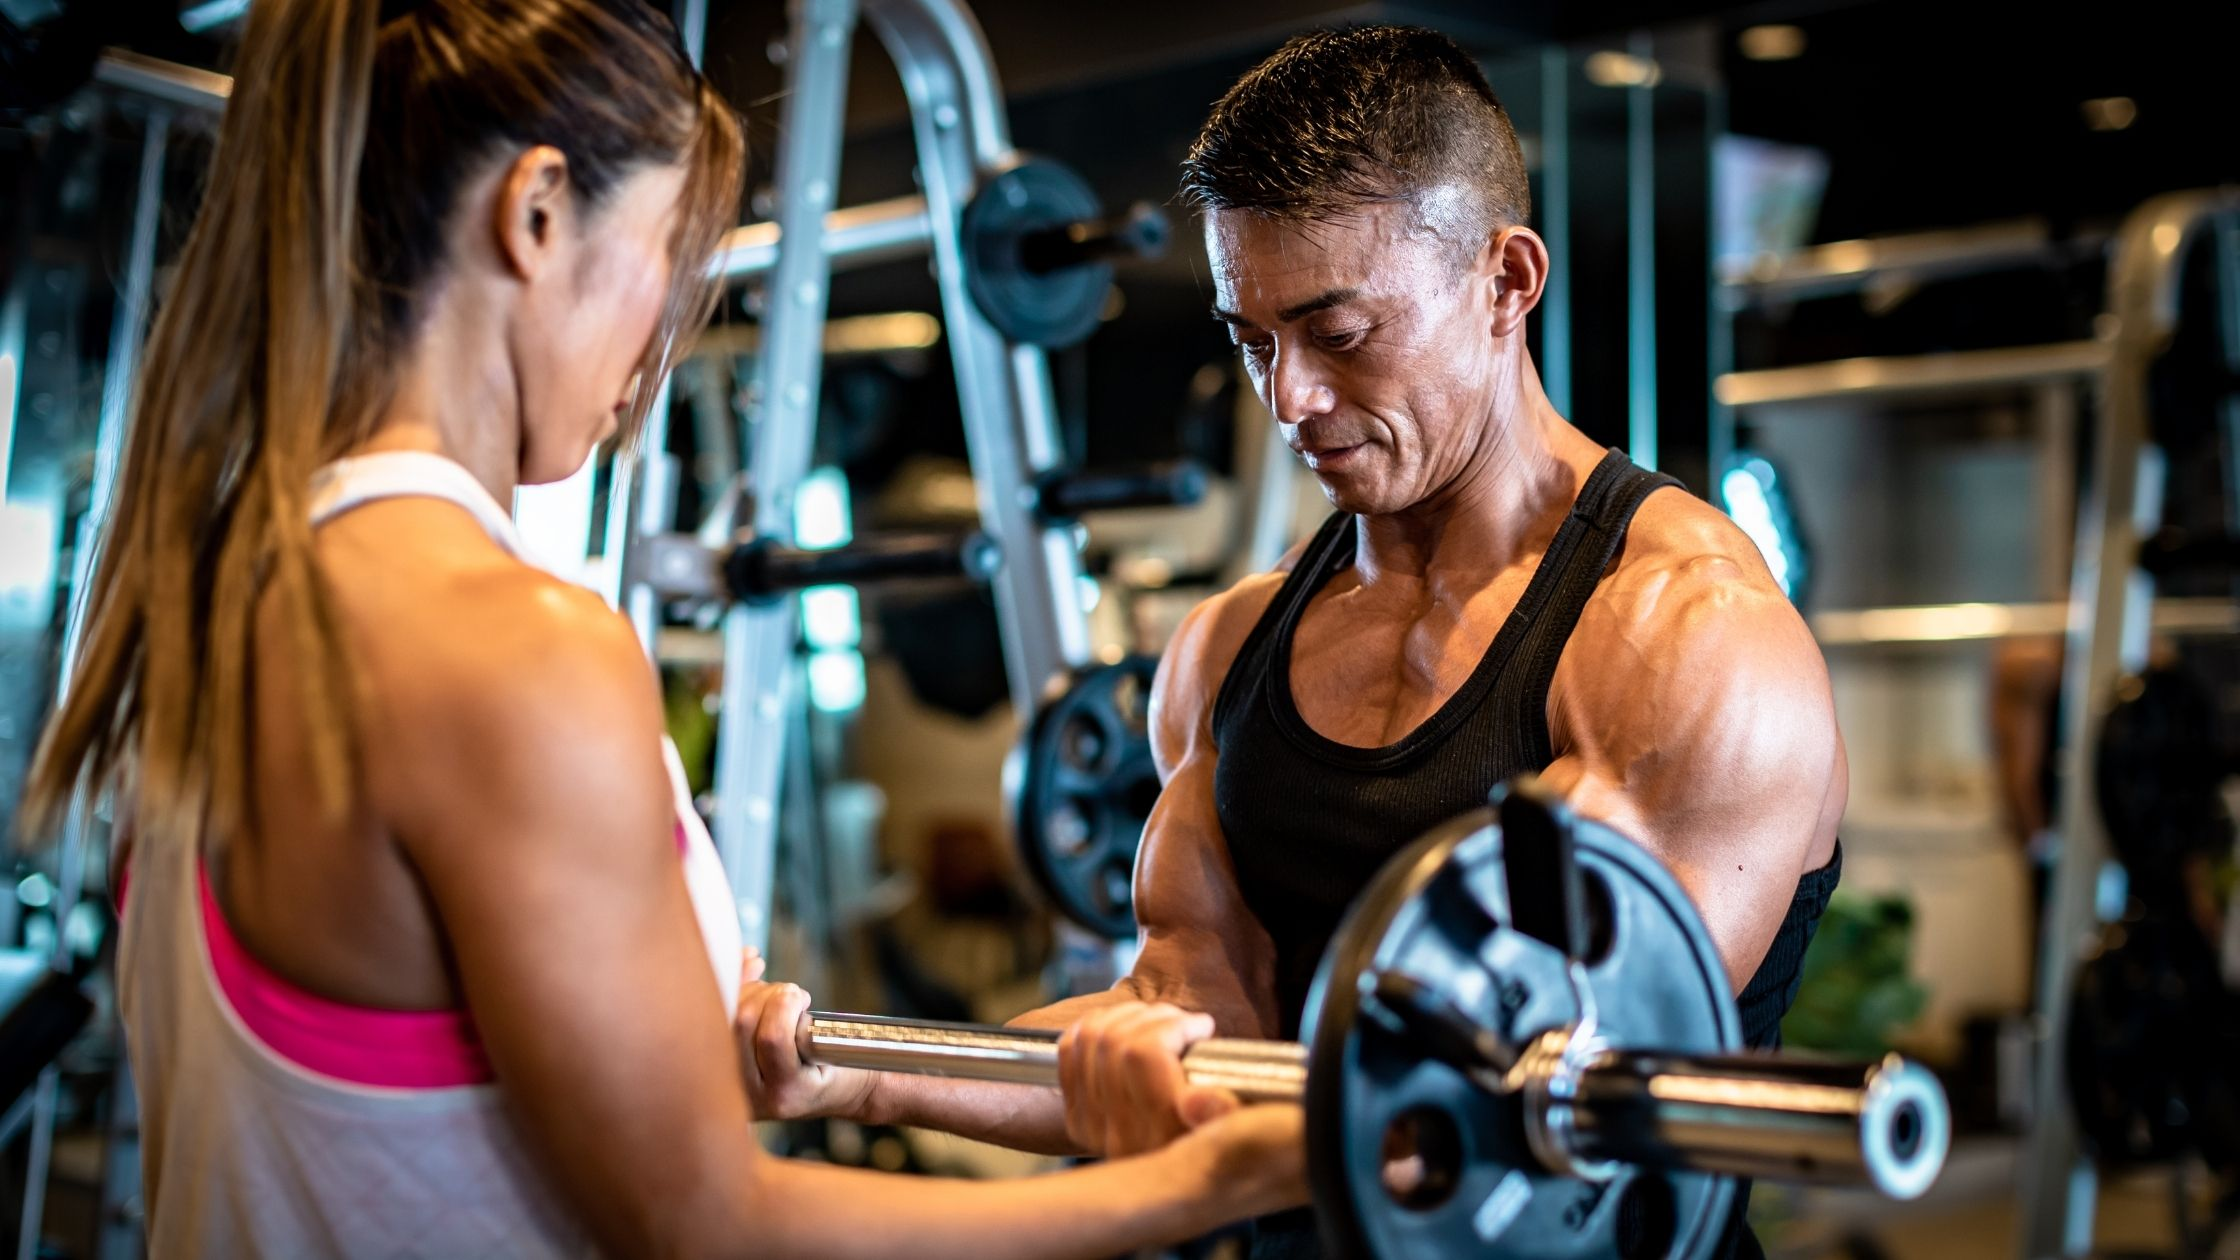 types of gyms: personal training gym